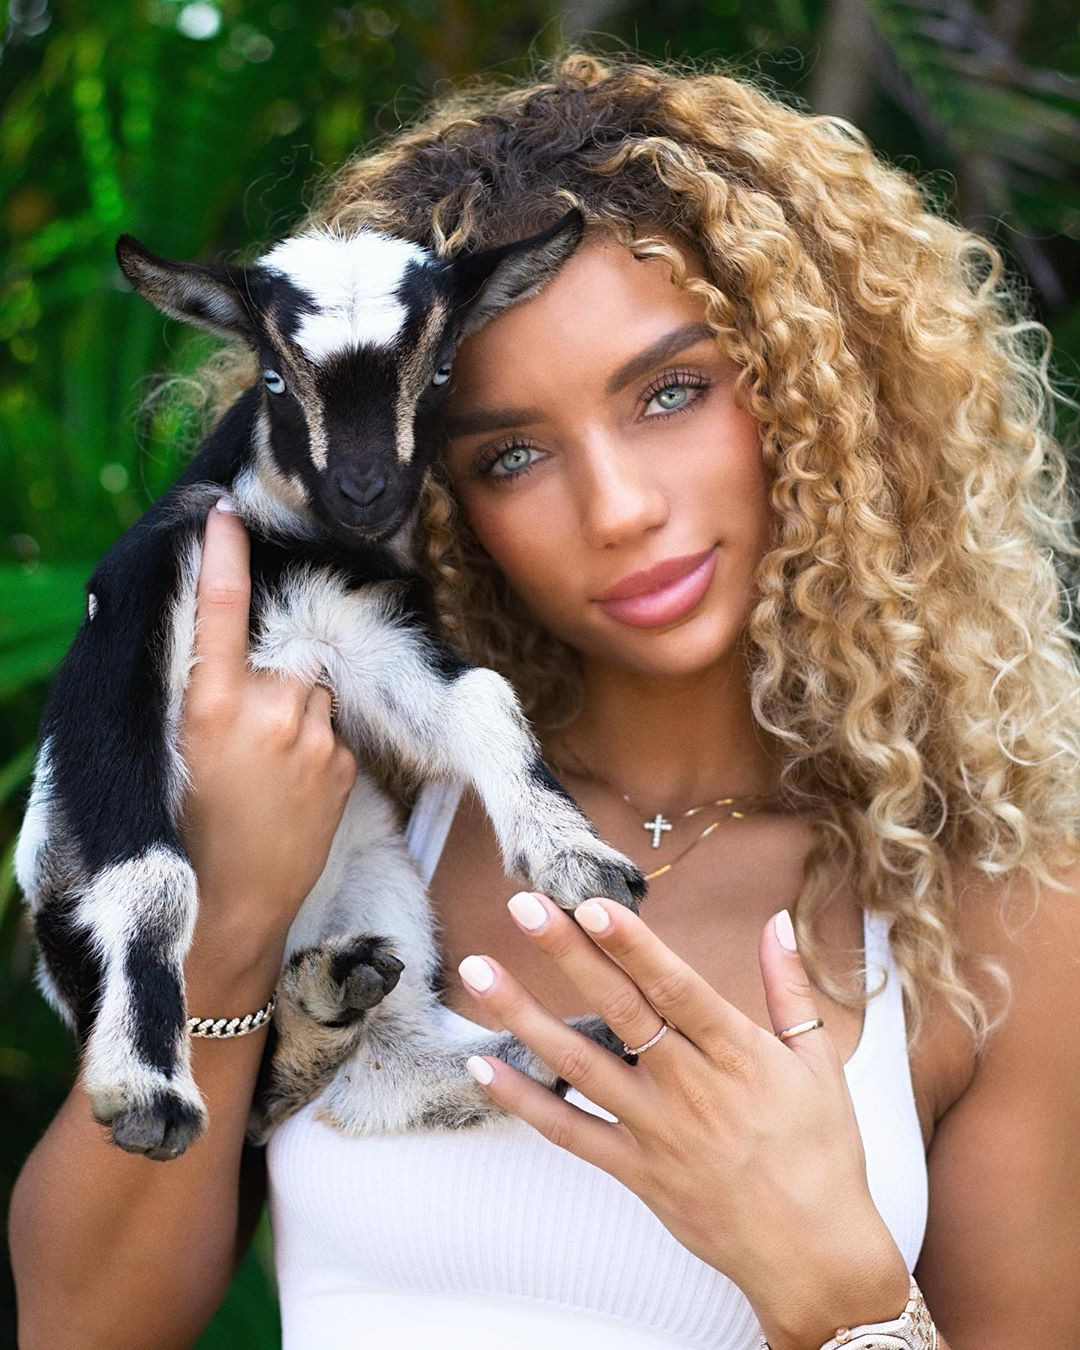 Jena Frumes fur dress for girls, Long Hairstyle Girls, Hair Style